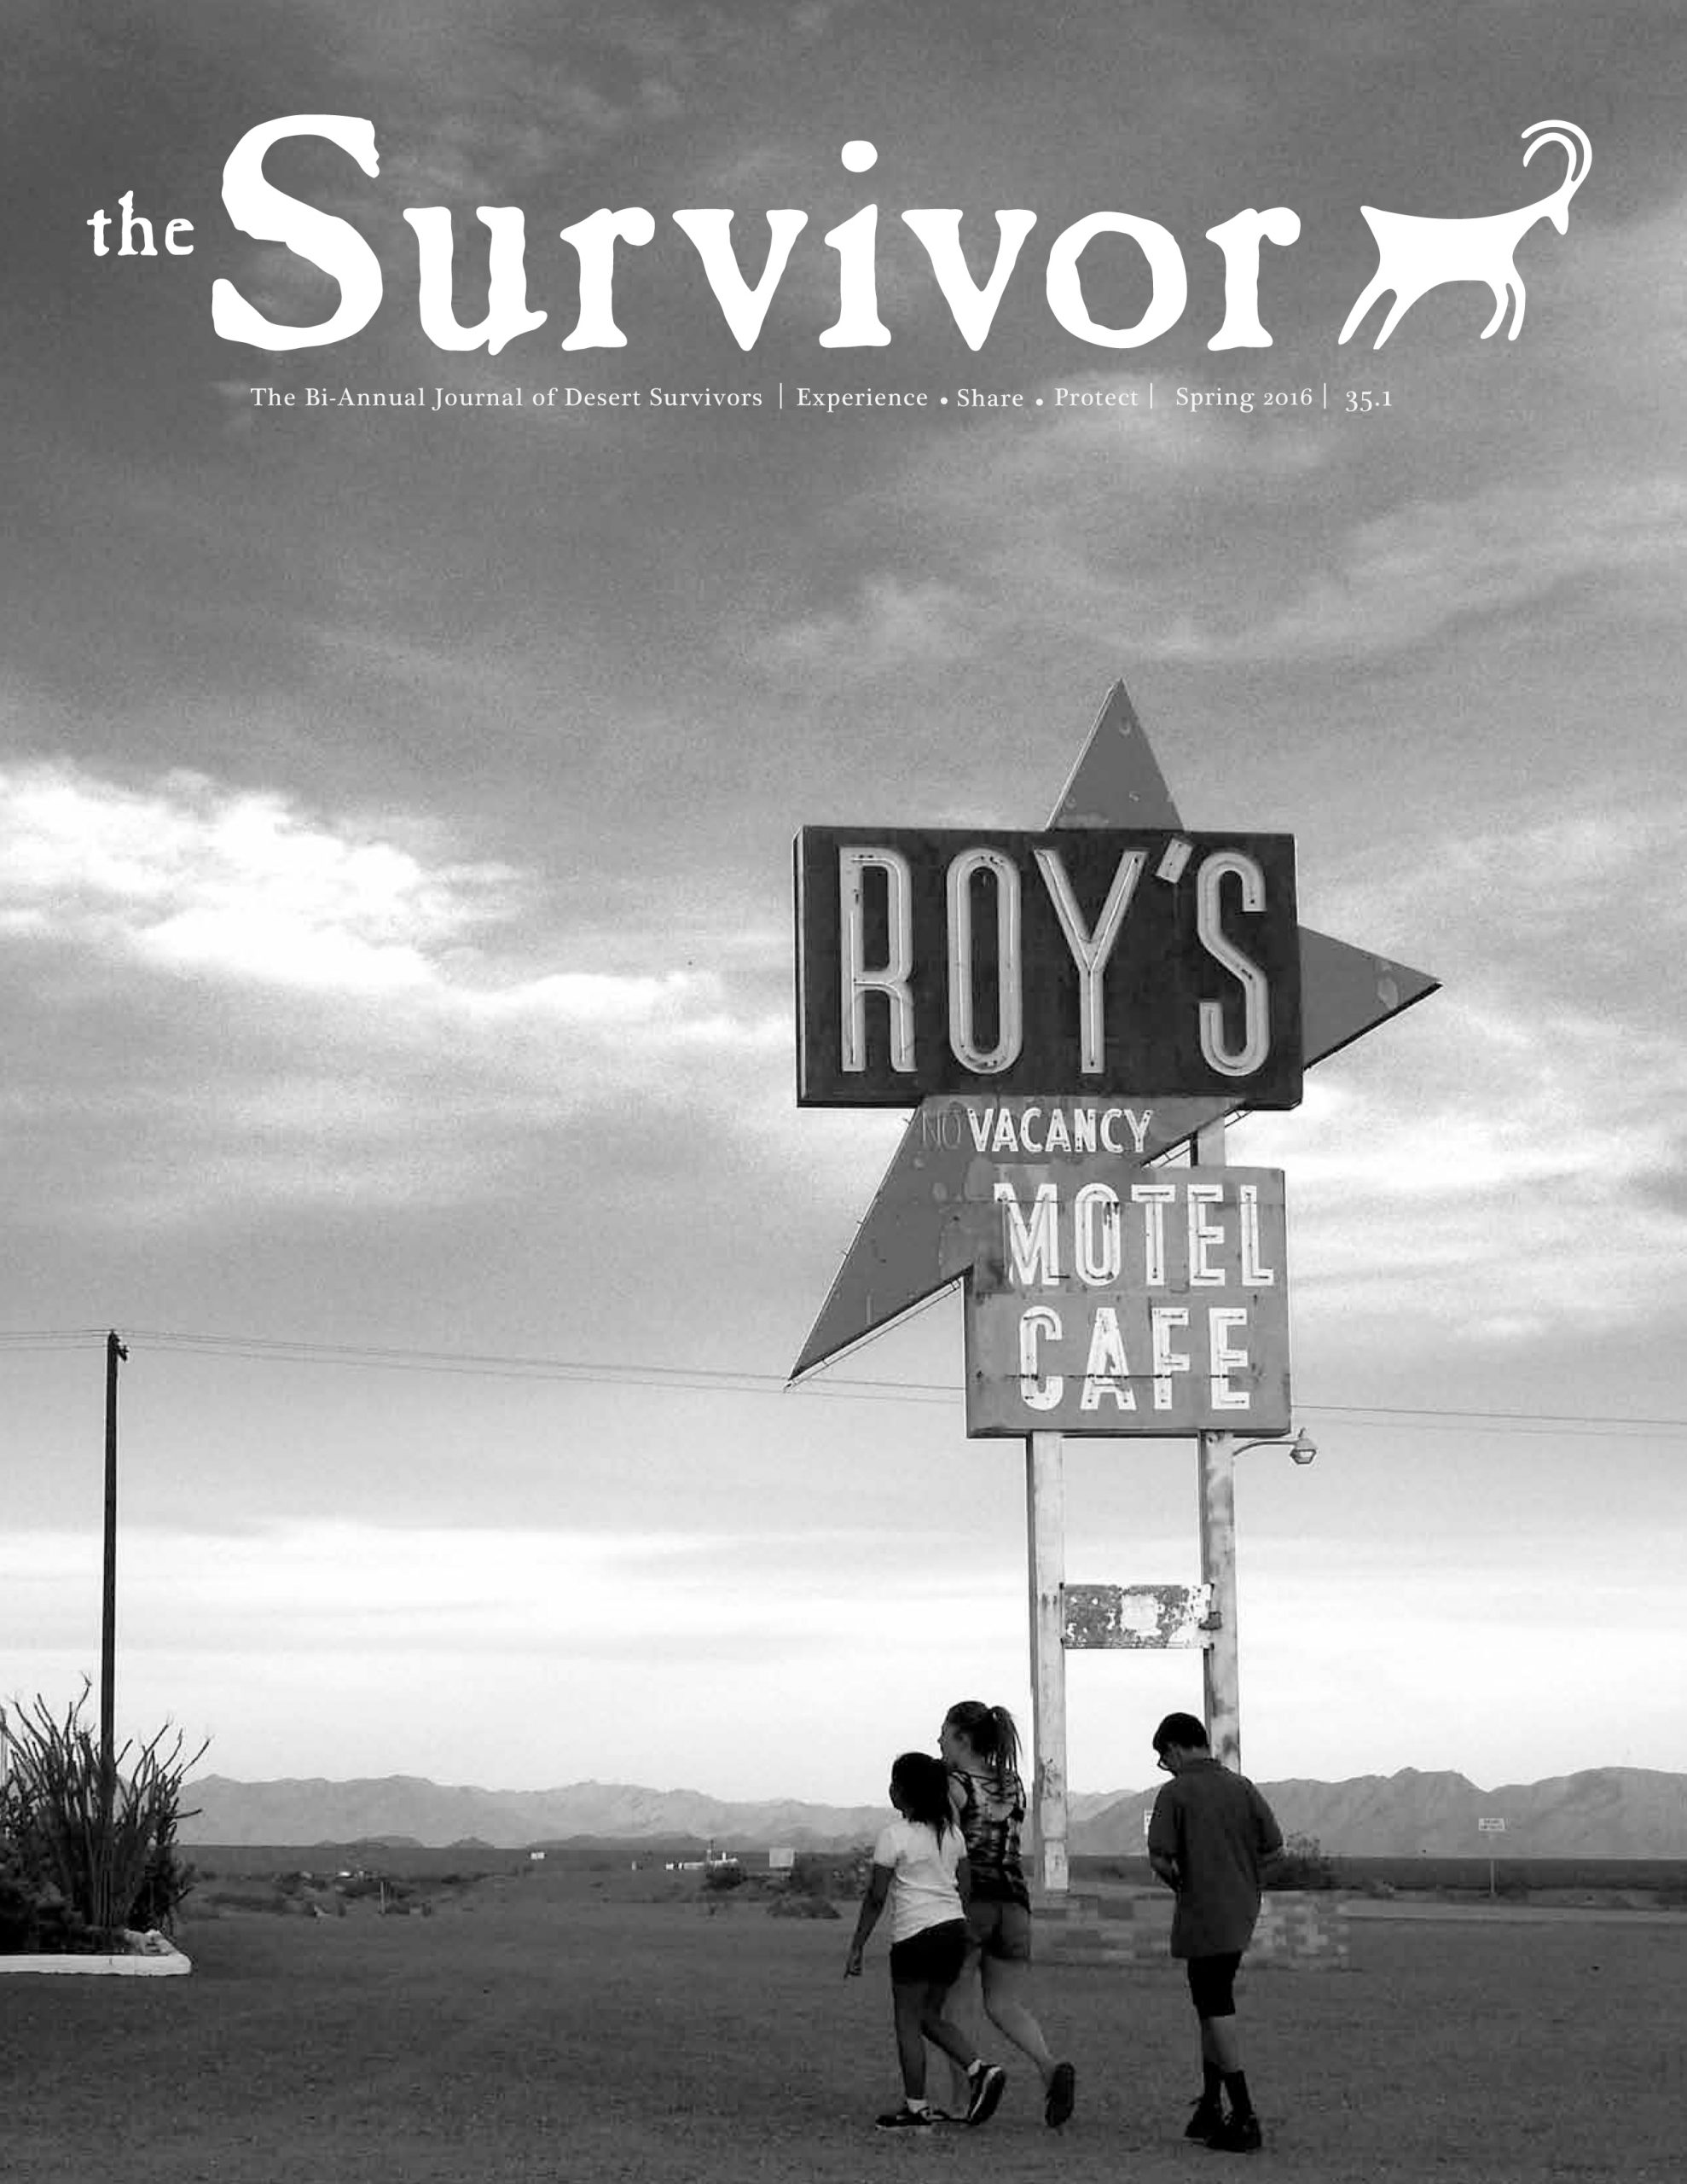 The Survivor Spring 2016 cover